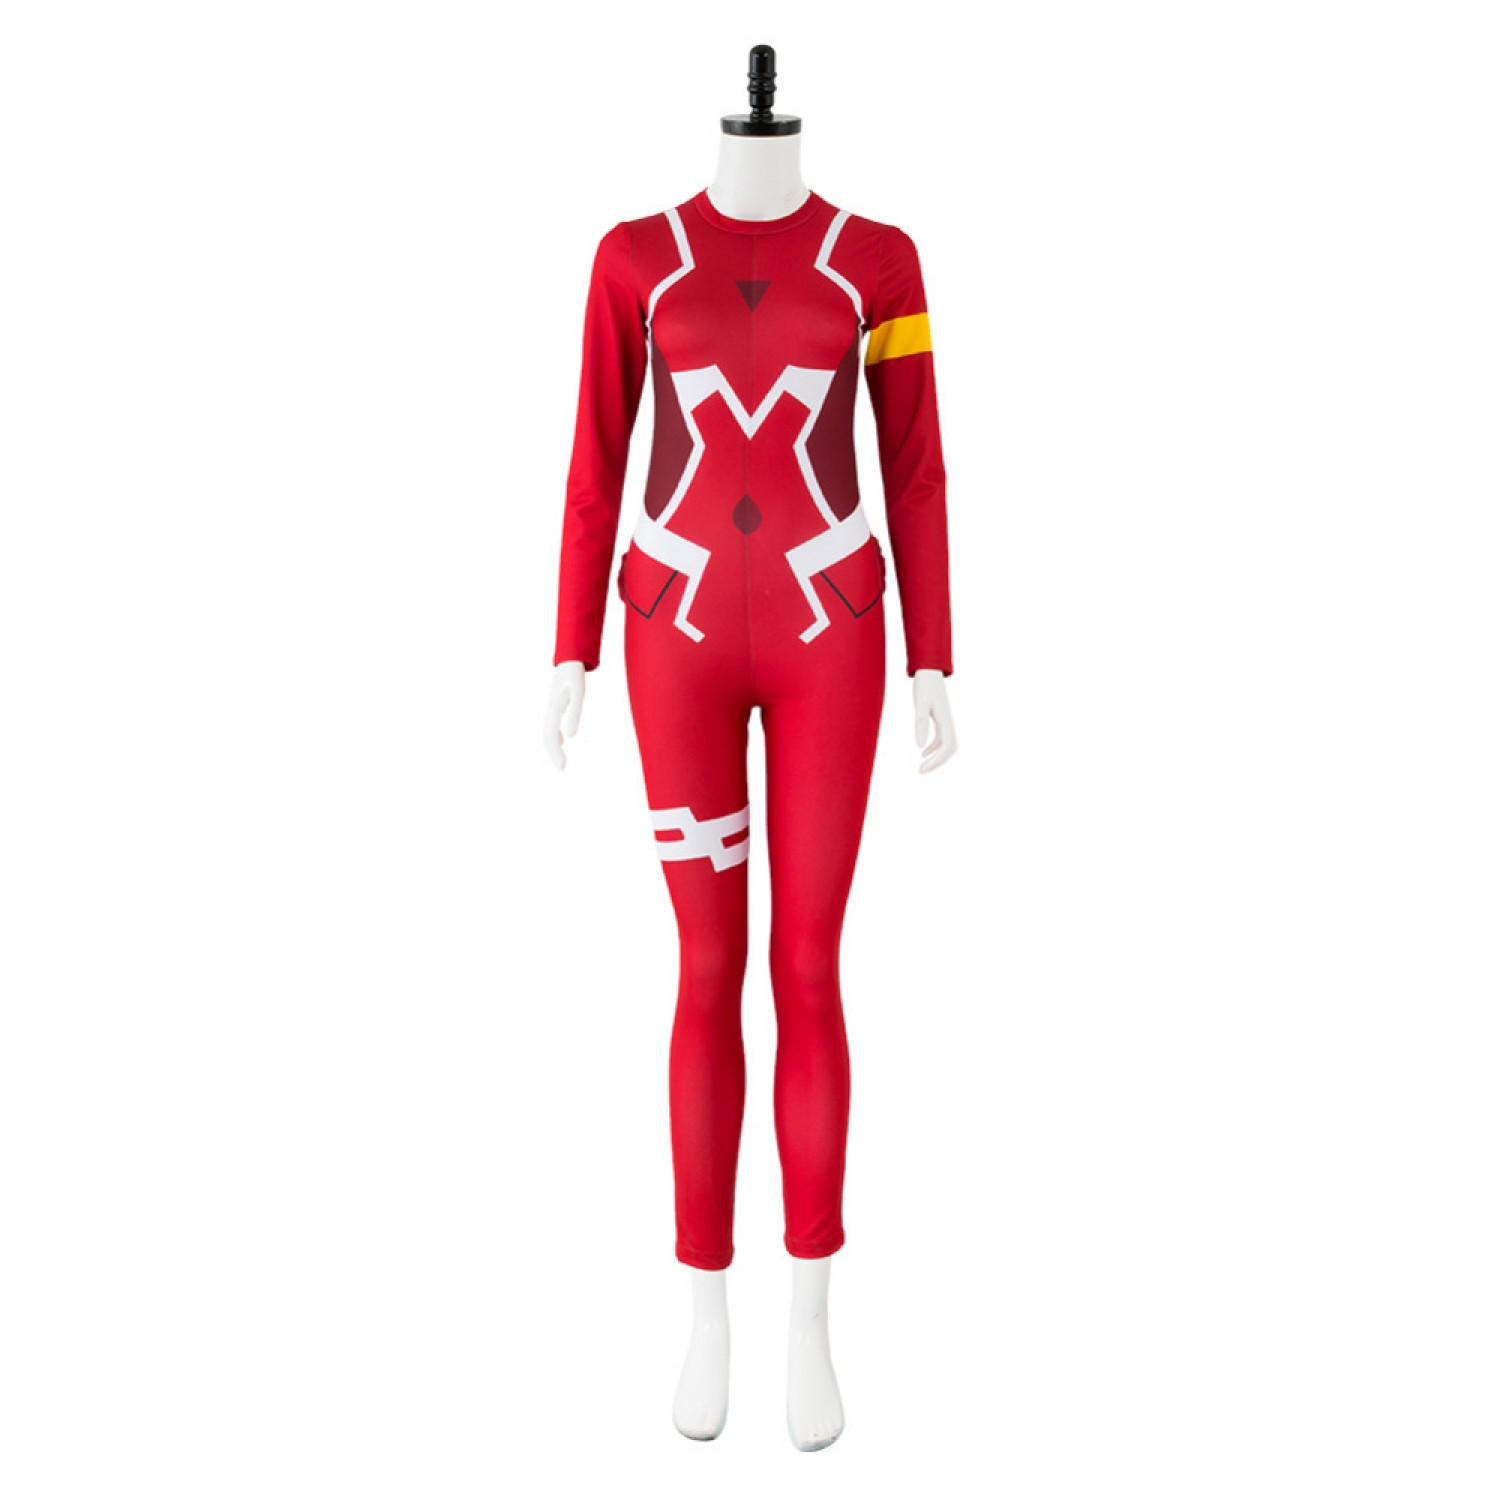 DARLING in the FRANXX Code 002 Zero Two Pilot Red Jumpsuit Cosplay Costume